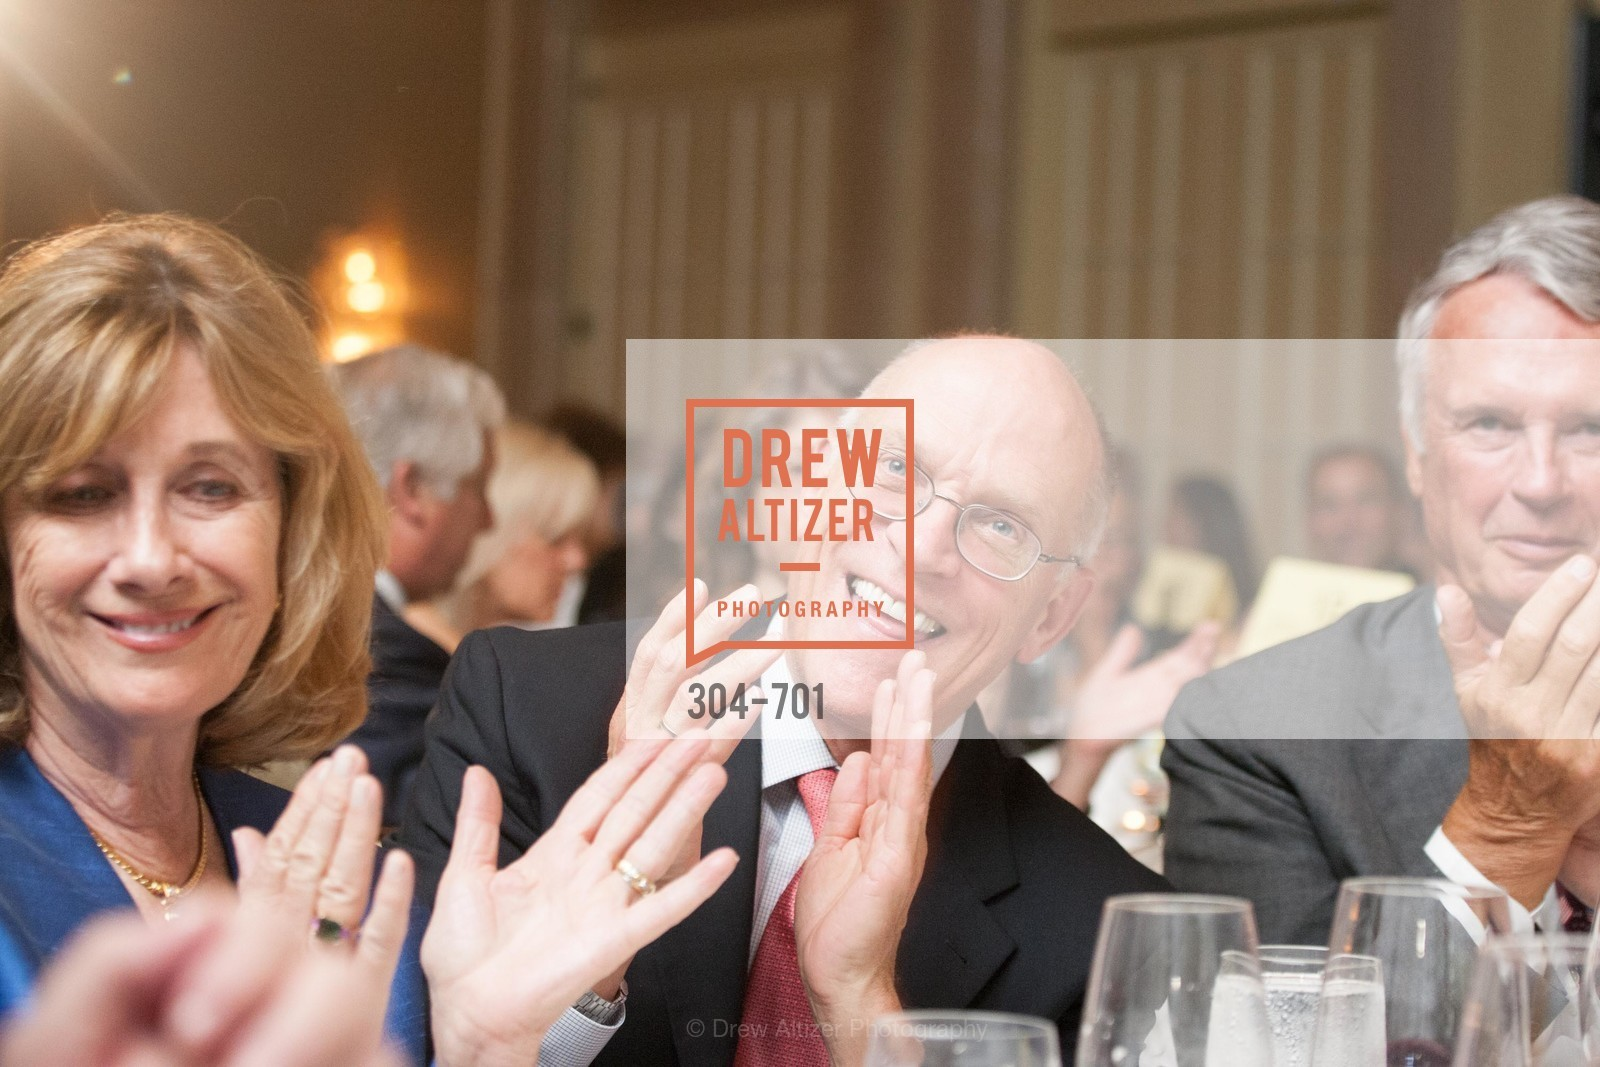 Extras, SUMMER SEARCH San Francisco 25th Anniversary, May 6th, 2015, Photo,Drew Altizer, Drew Altizer Photography, full-service agency, private events, San Francisco photographer, photographer california